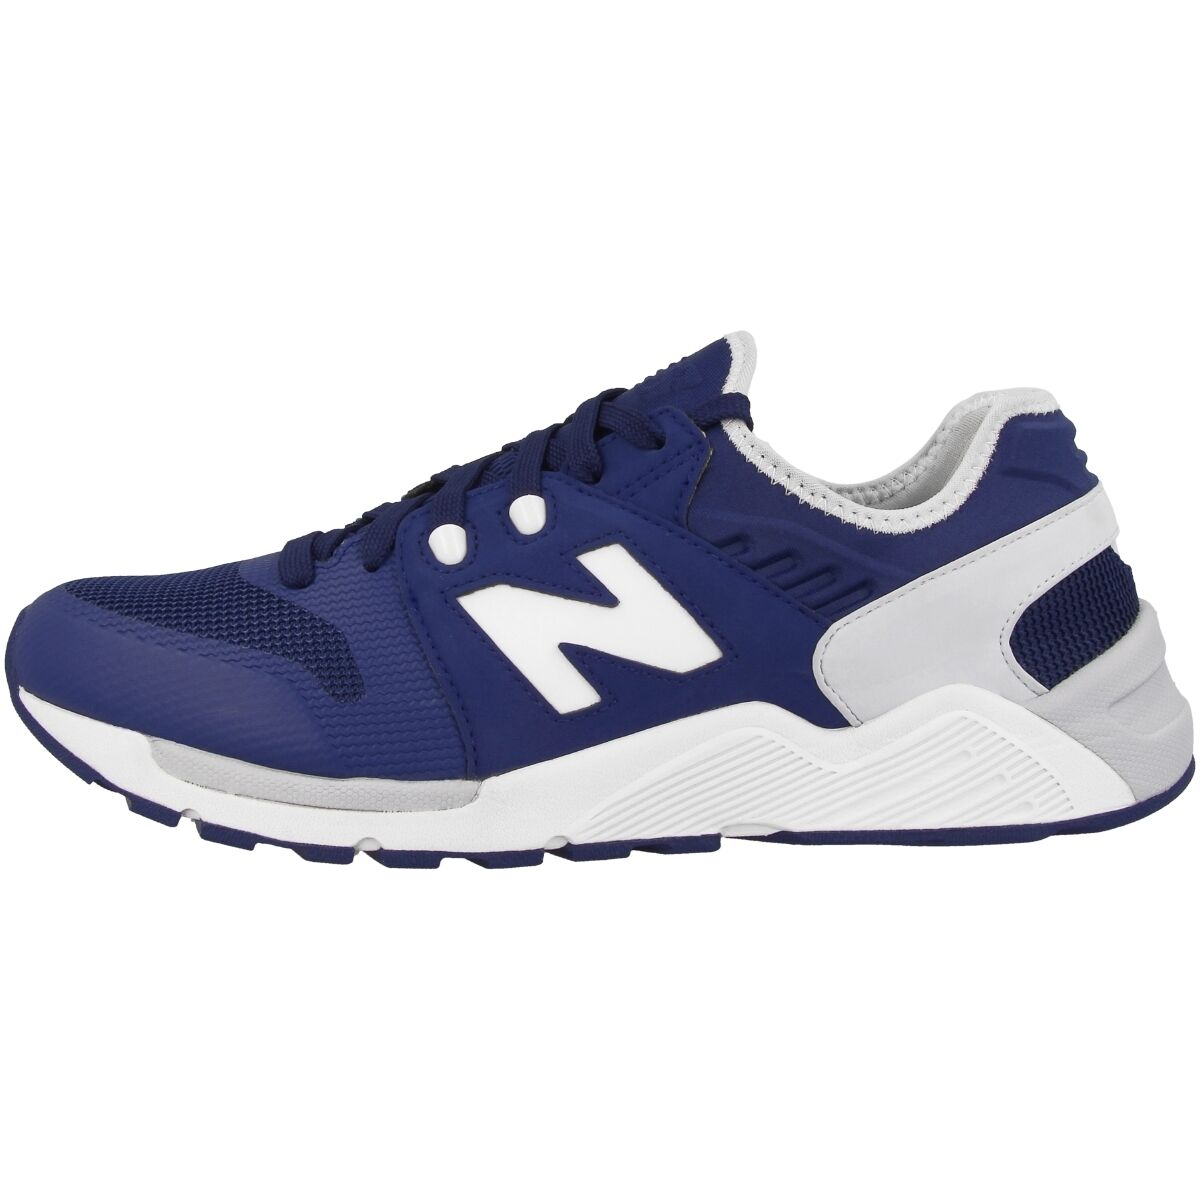 New Balance Ml 009 Phb shoes Navy Light Grey ML009PHB Casual Trainers Md 1500